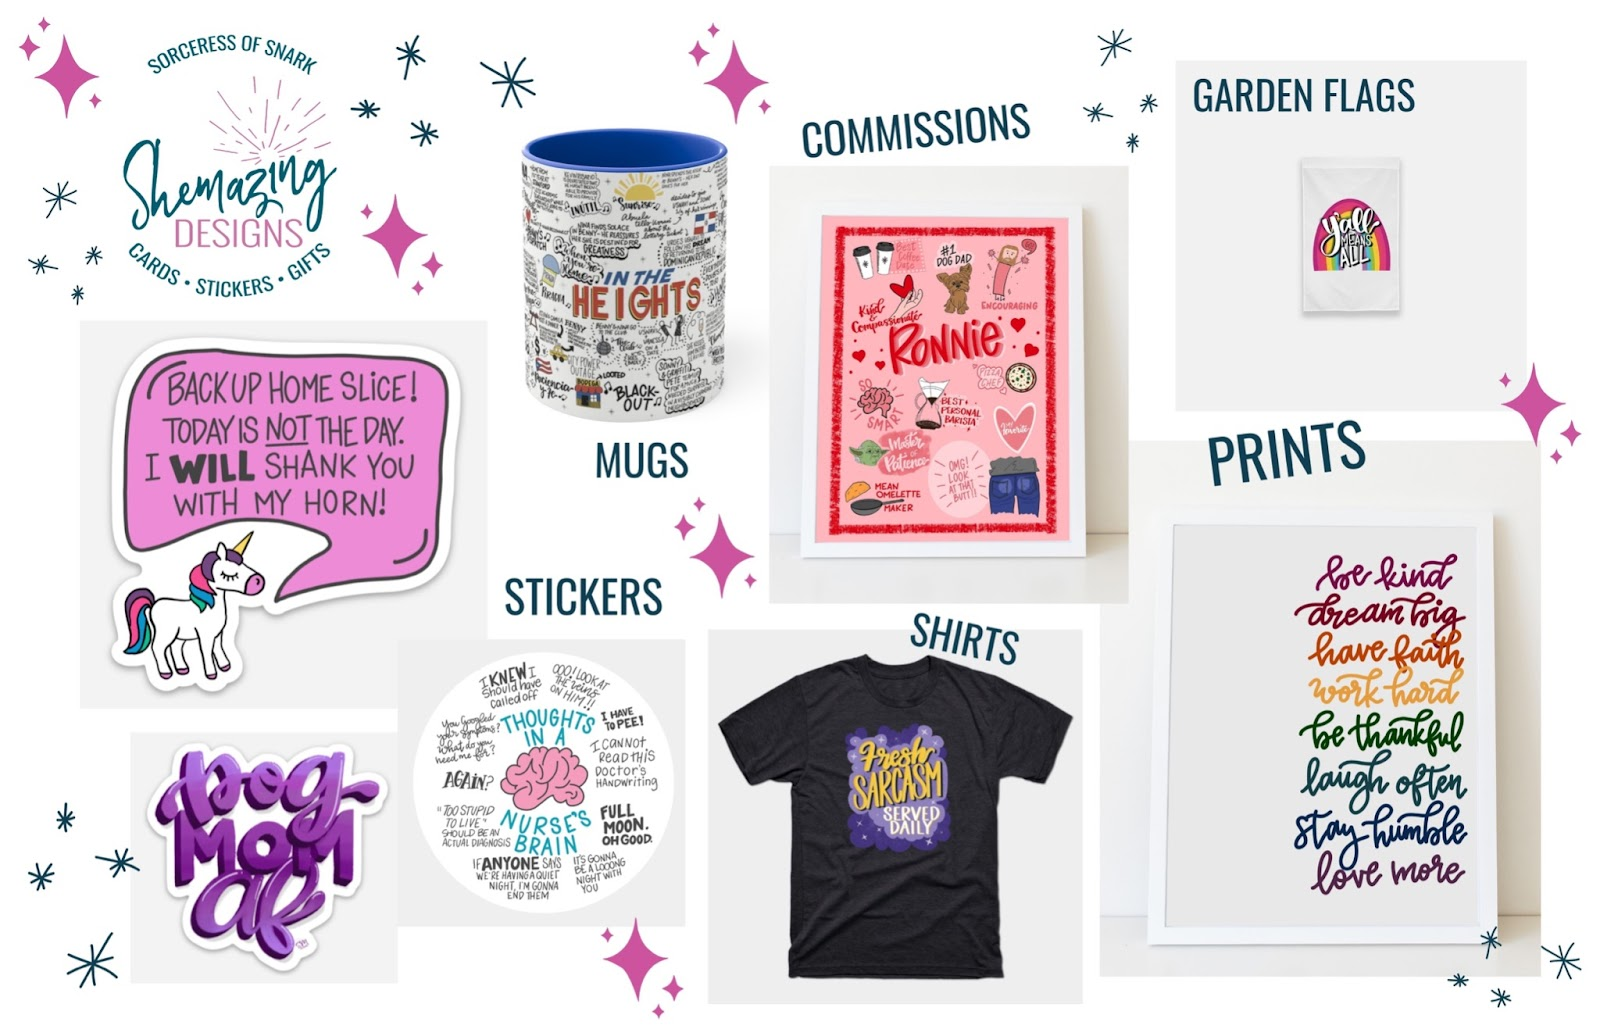 Various products and designs by Shemazing Designs